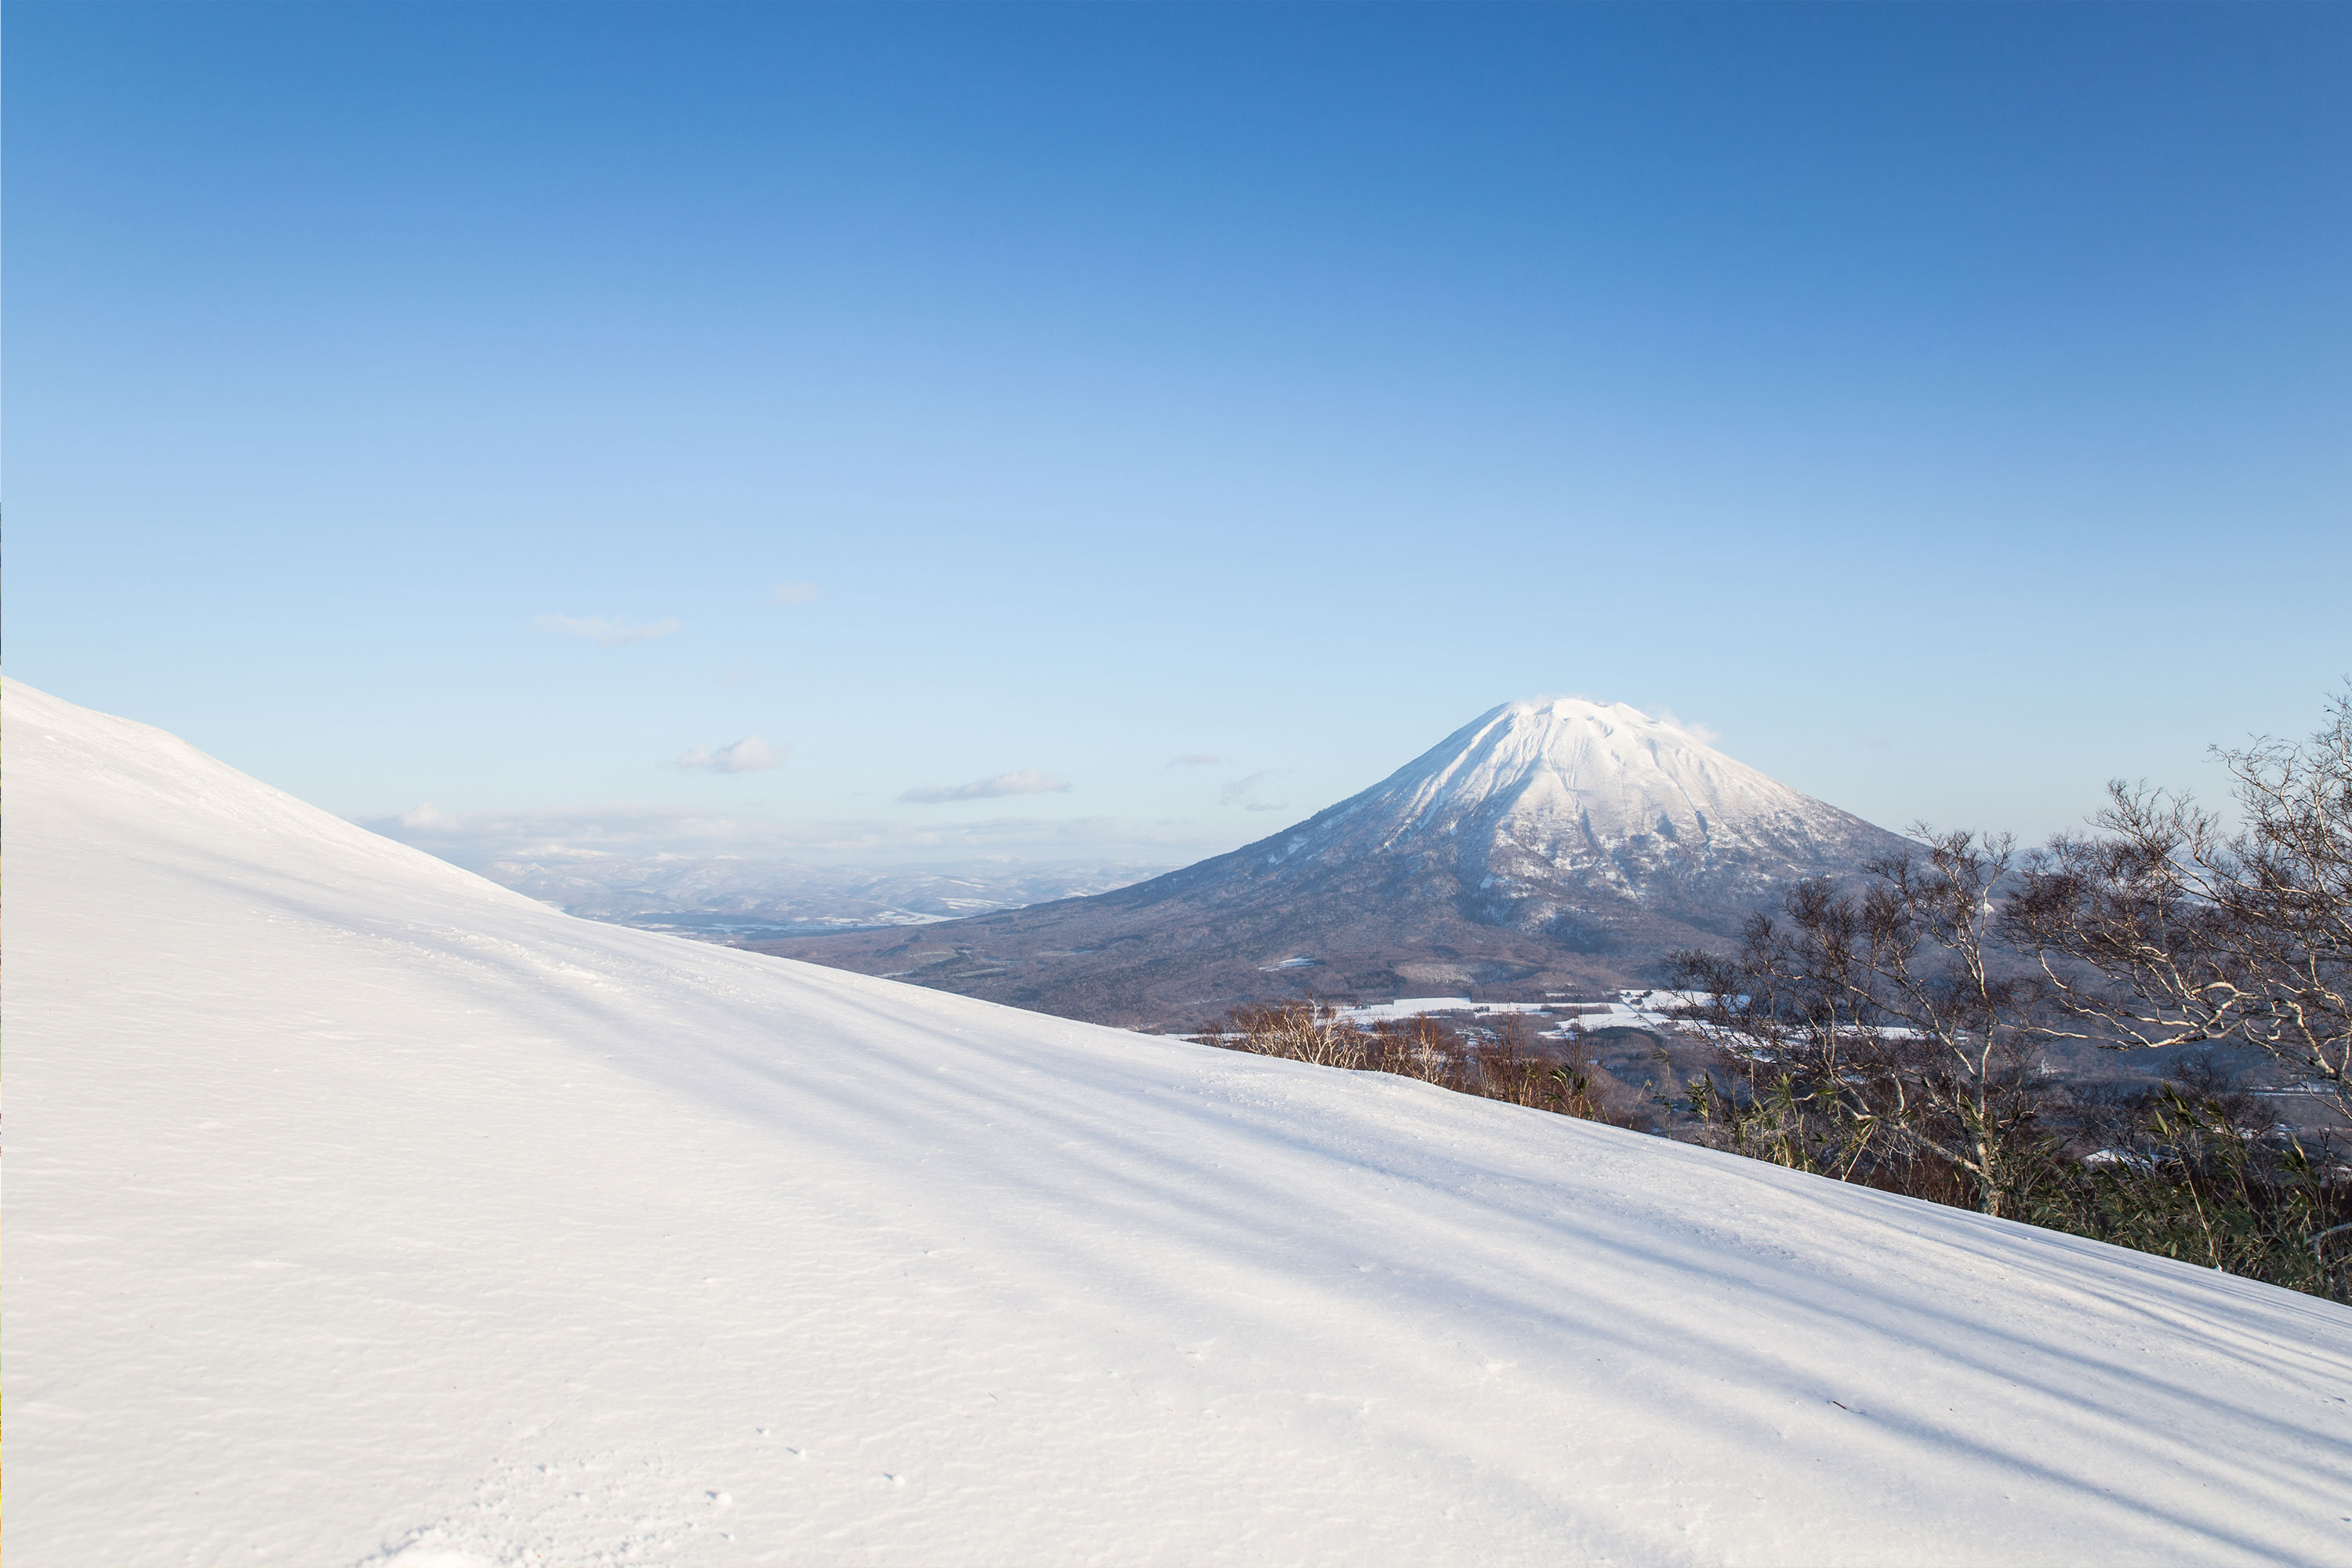 Niseko Ski Resort in Japan